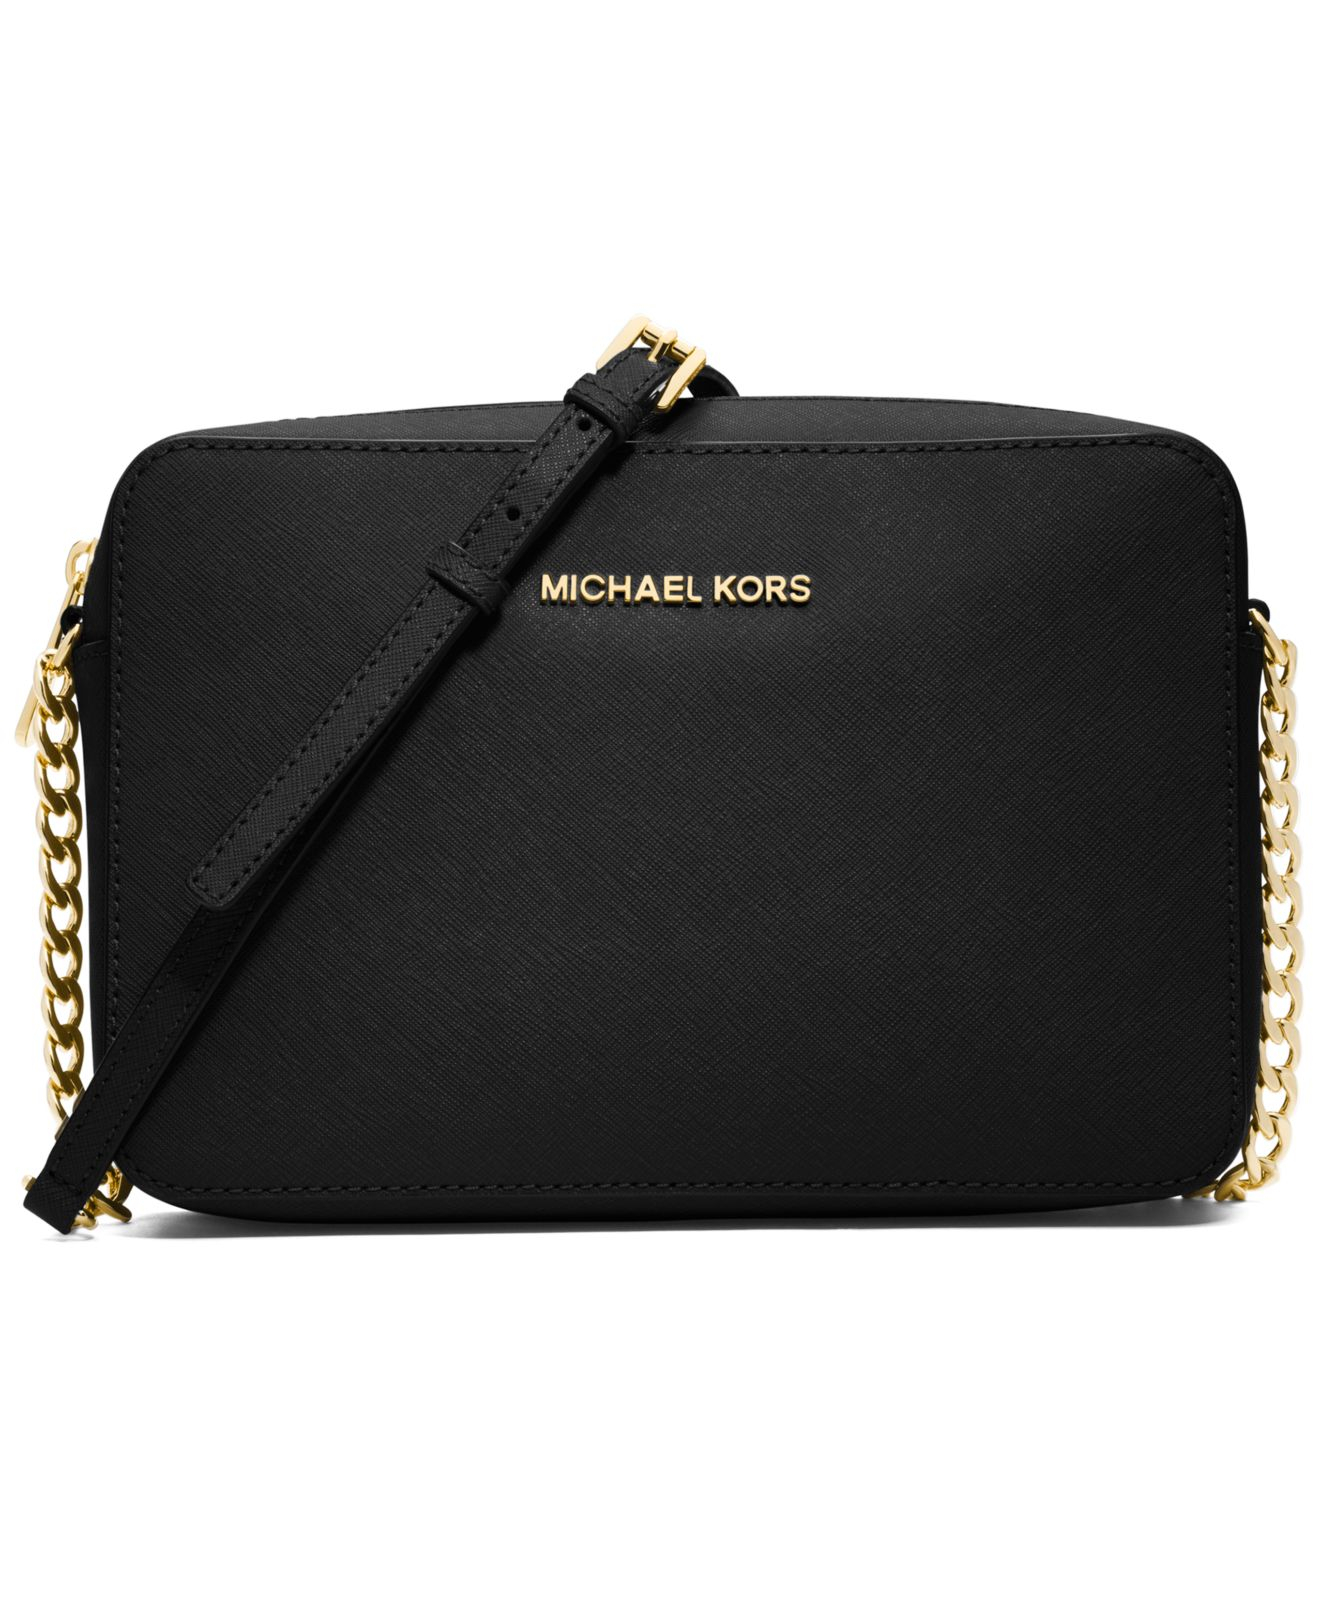 michael kors michael jet set travel large crossbody in. Black Bedroom Furniture Sets. Home Design Ideas